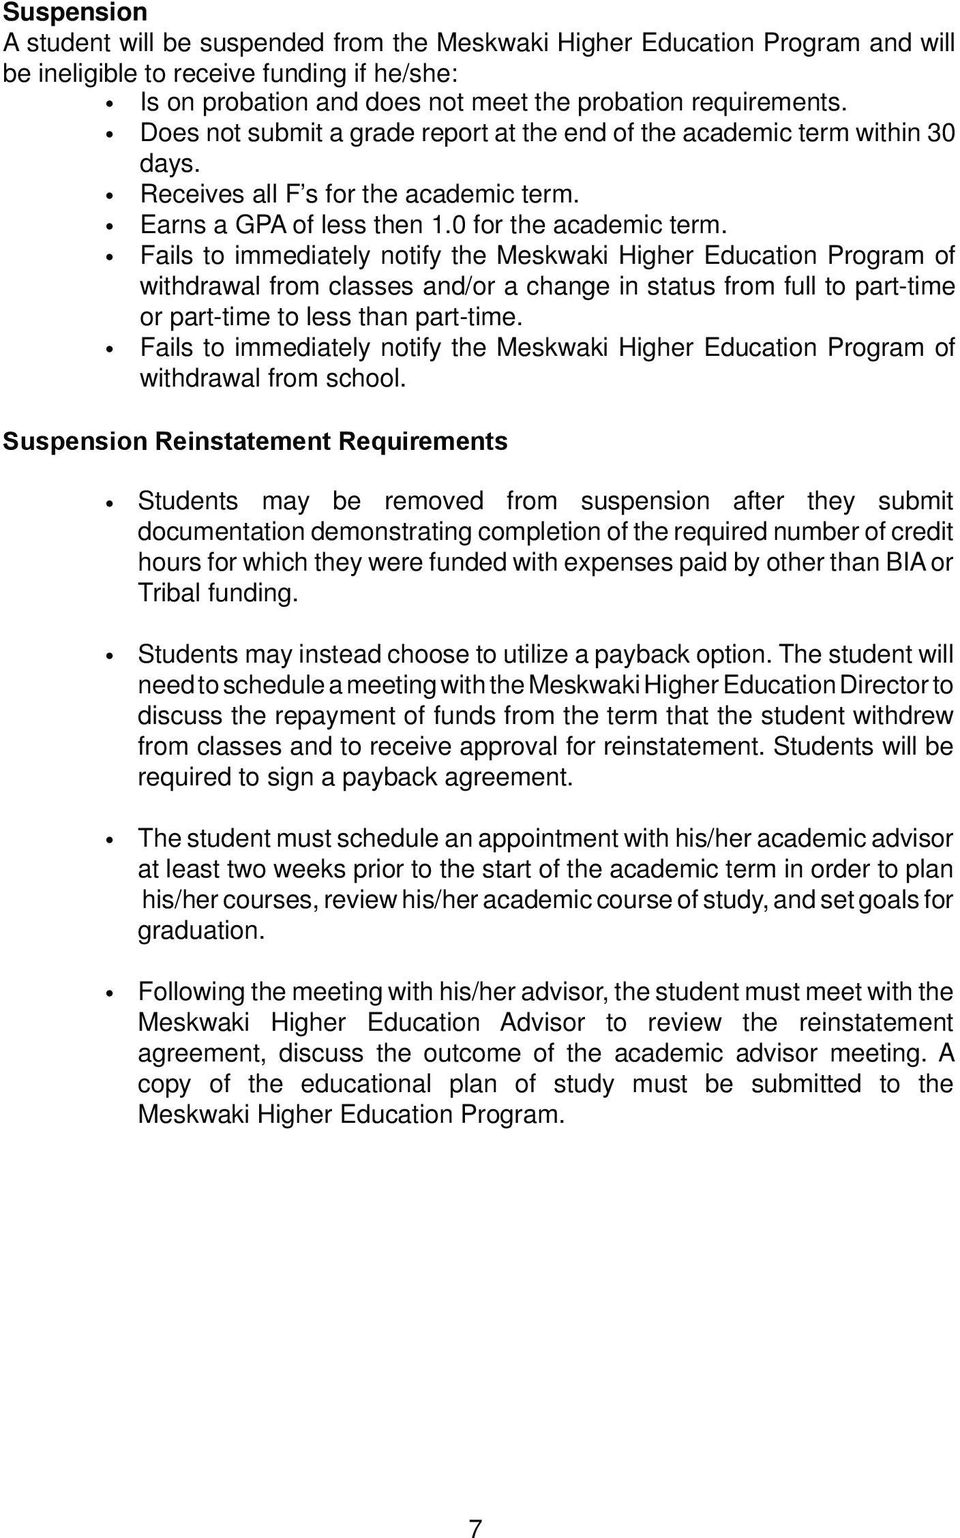 Fails to immediately notify the Meskwaki Higher Education Program of withdrawal from classes and/or a change in status from full to part-time or part-time to less than part-time.